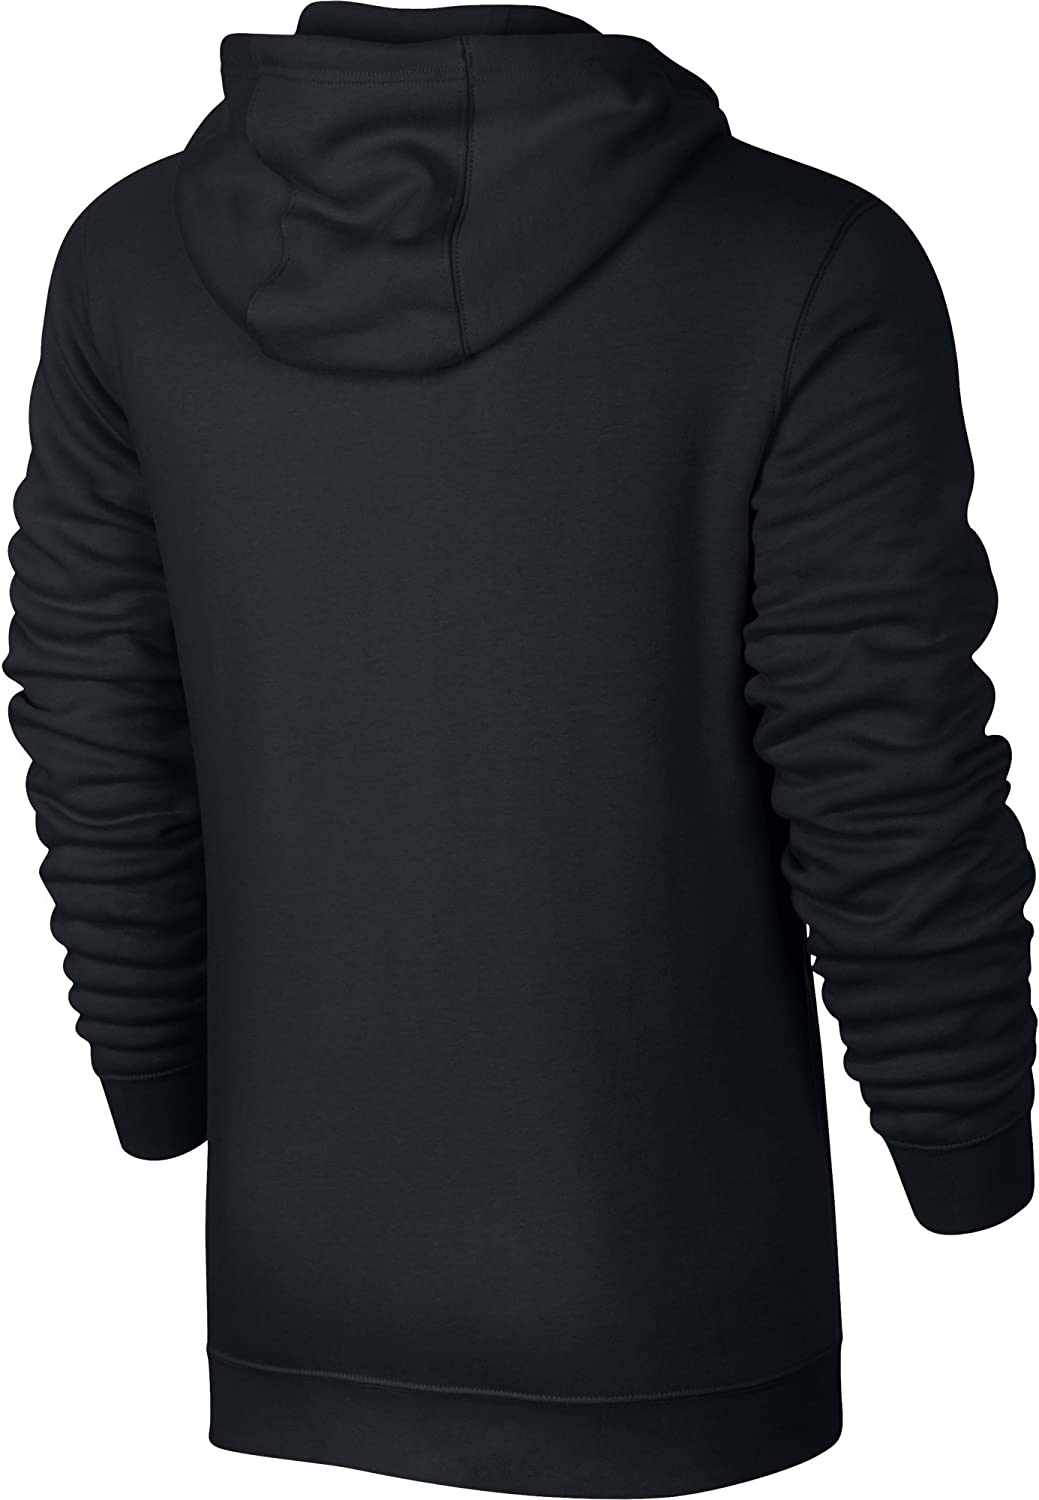 Sportswear Full Up Hoodie Men's Club Zip Nike kwlOPXZuTi